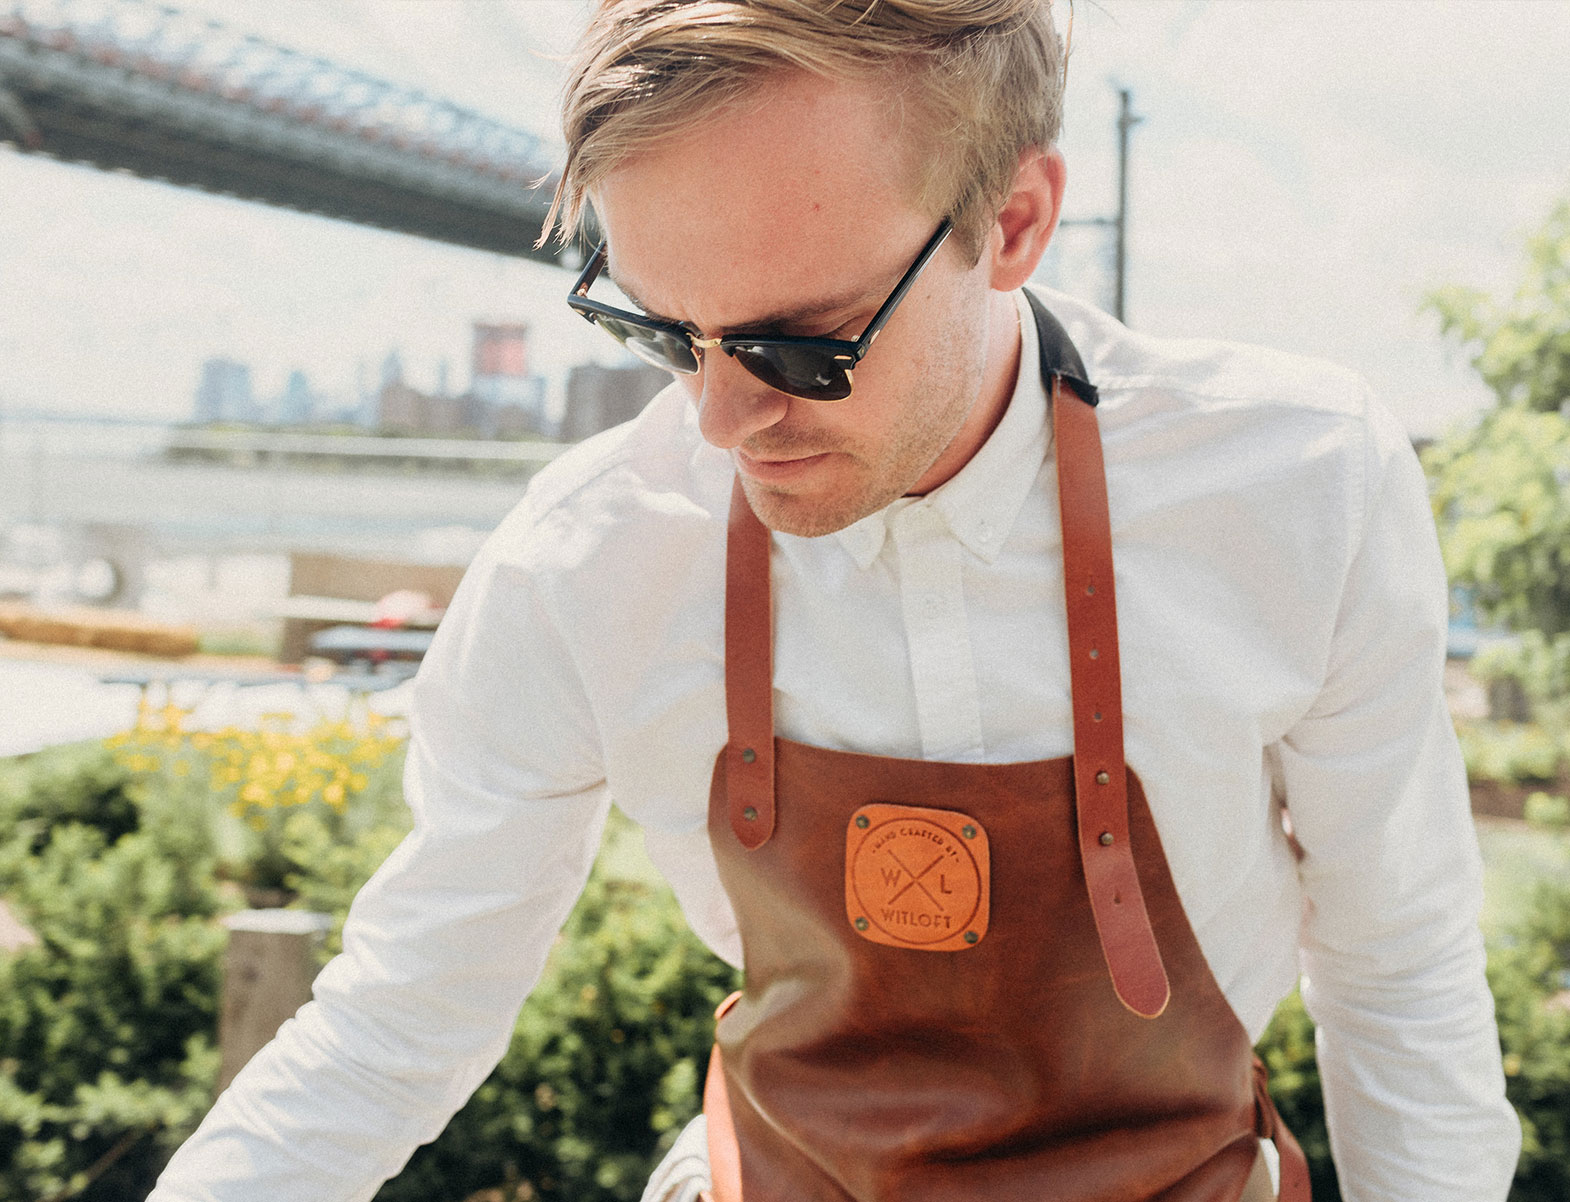 WITLOFT Cooking in Brooklyn Story the chef wearing a Cognac Classic